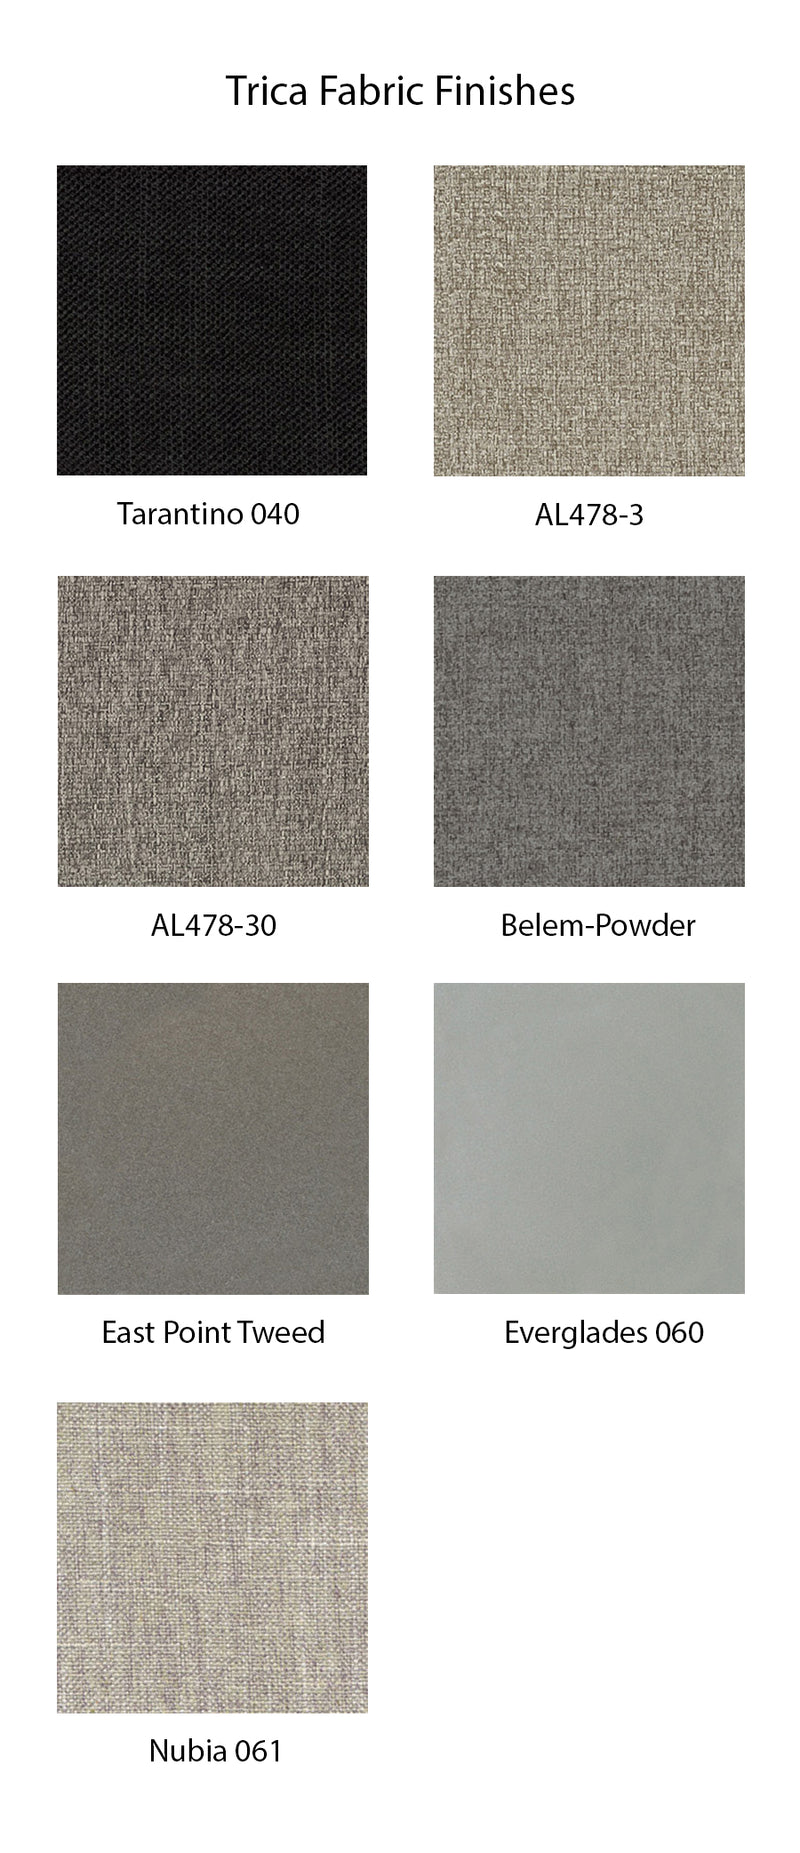 products/fabric-finishes-trica_e3b8b625-b7f2-4bfb-91b3-ca19e144c749.jpg